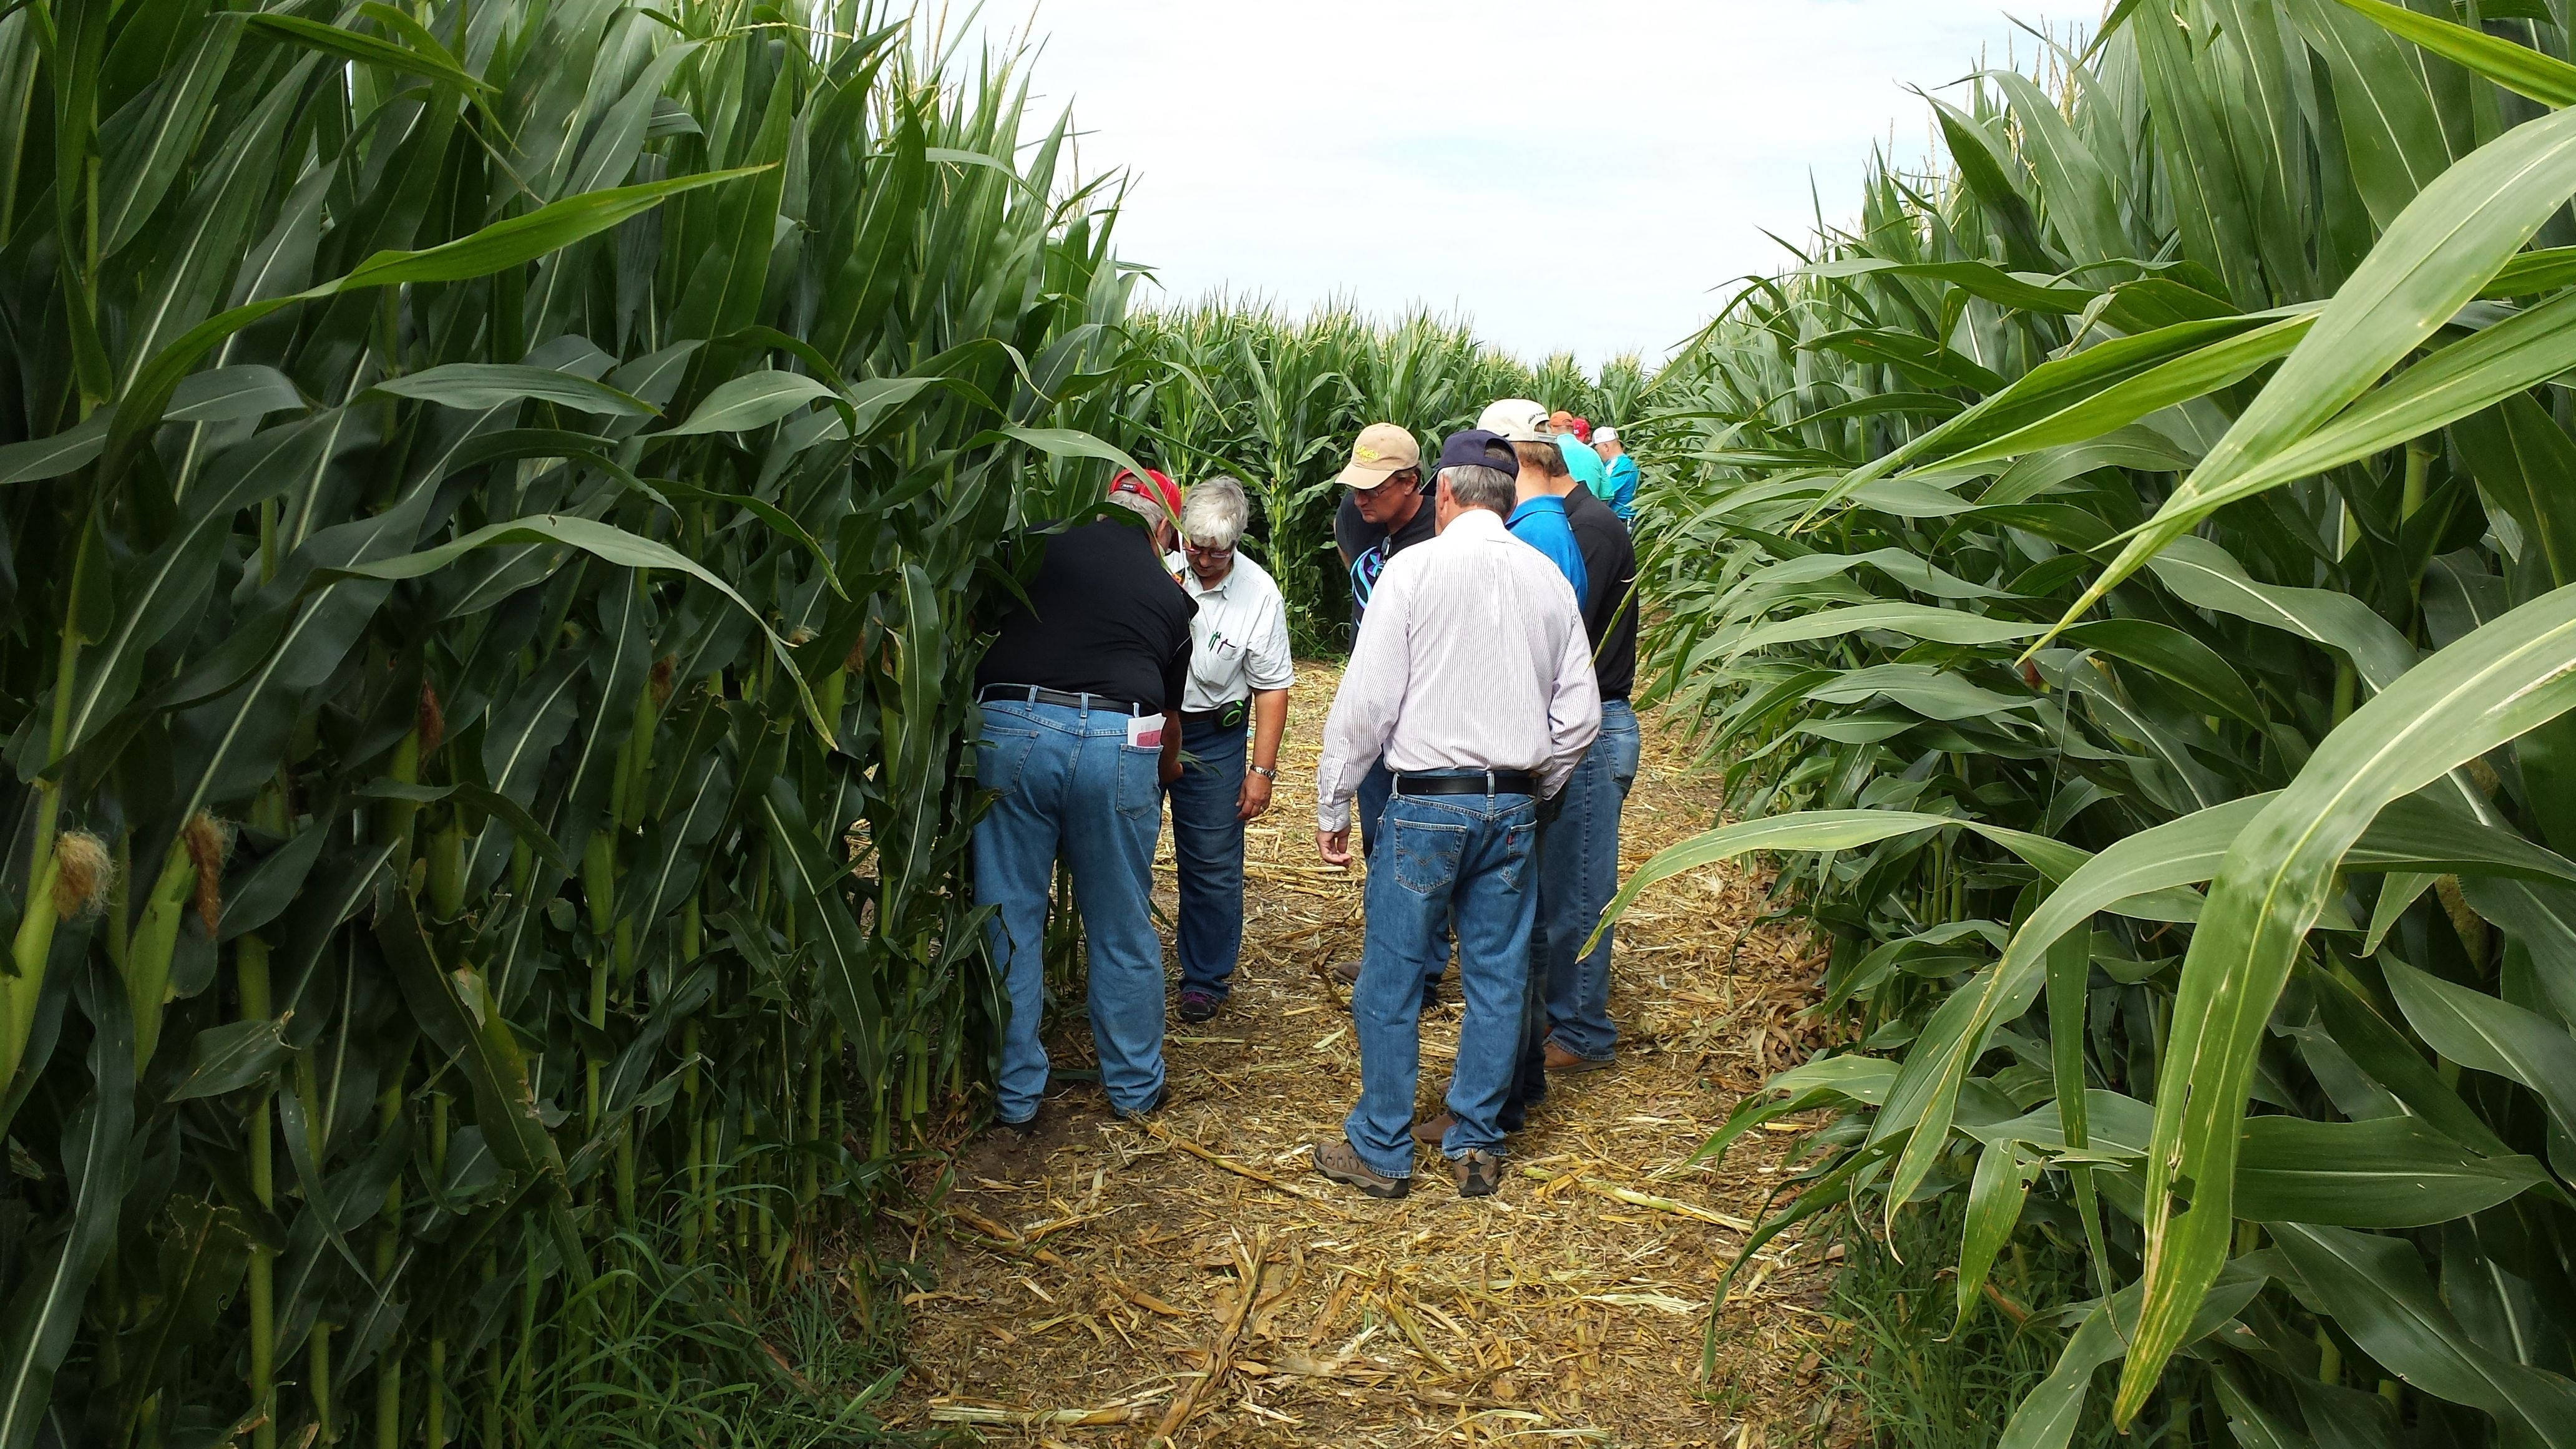 Crop Insurance in America cropinsurance (With images